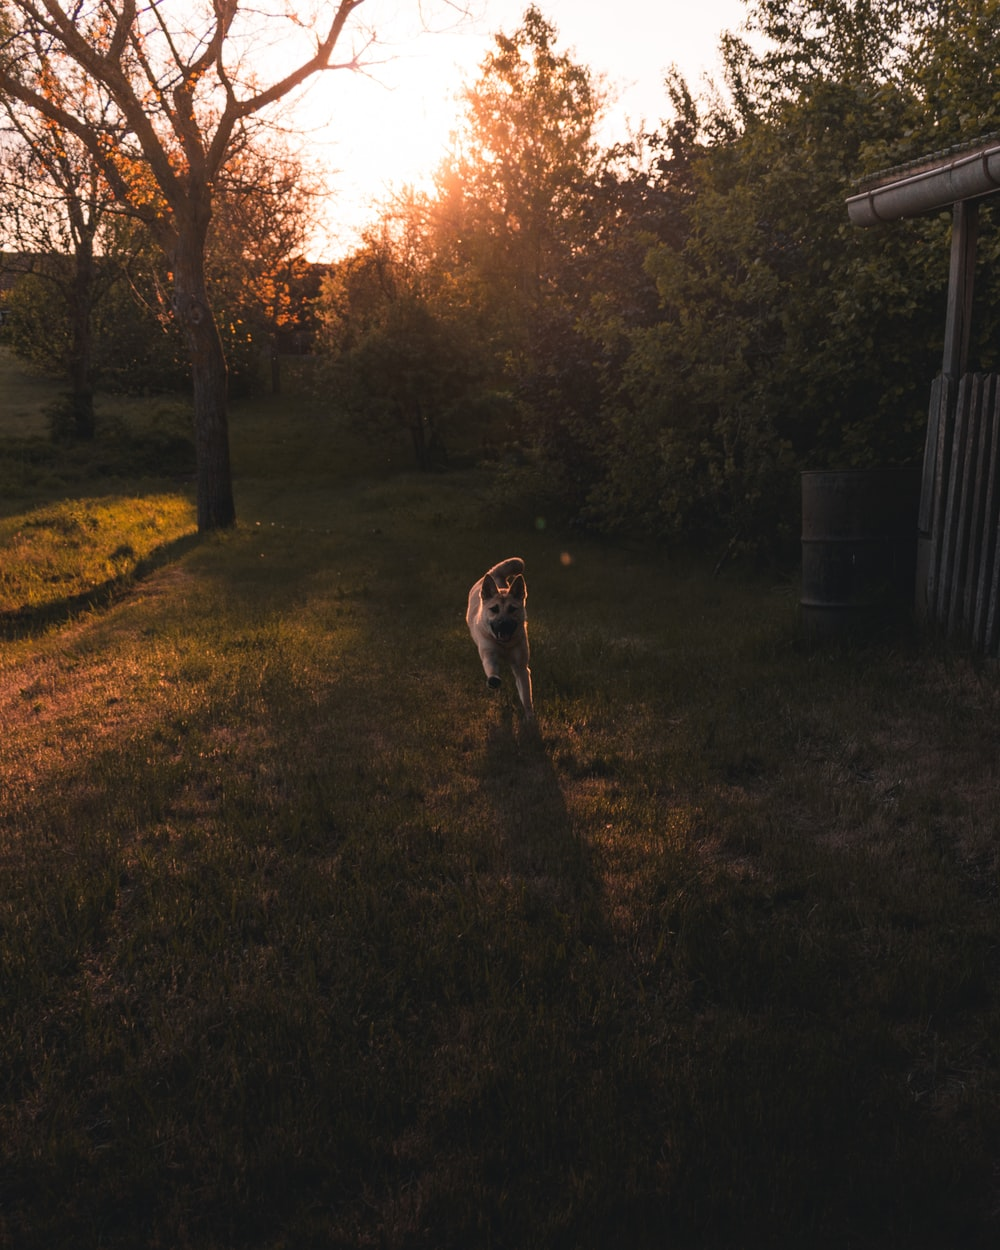 brown and white short coated dog on green grass field during sunset